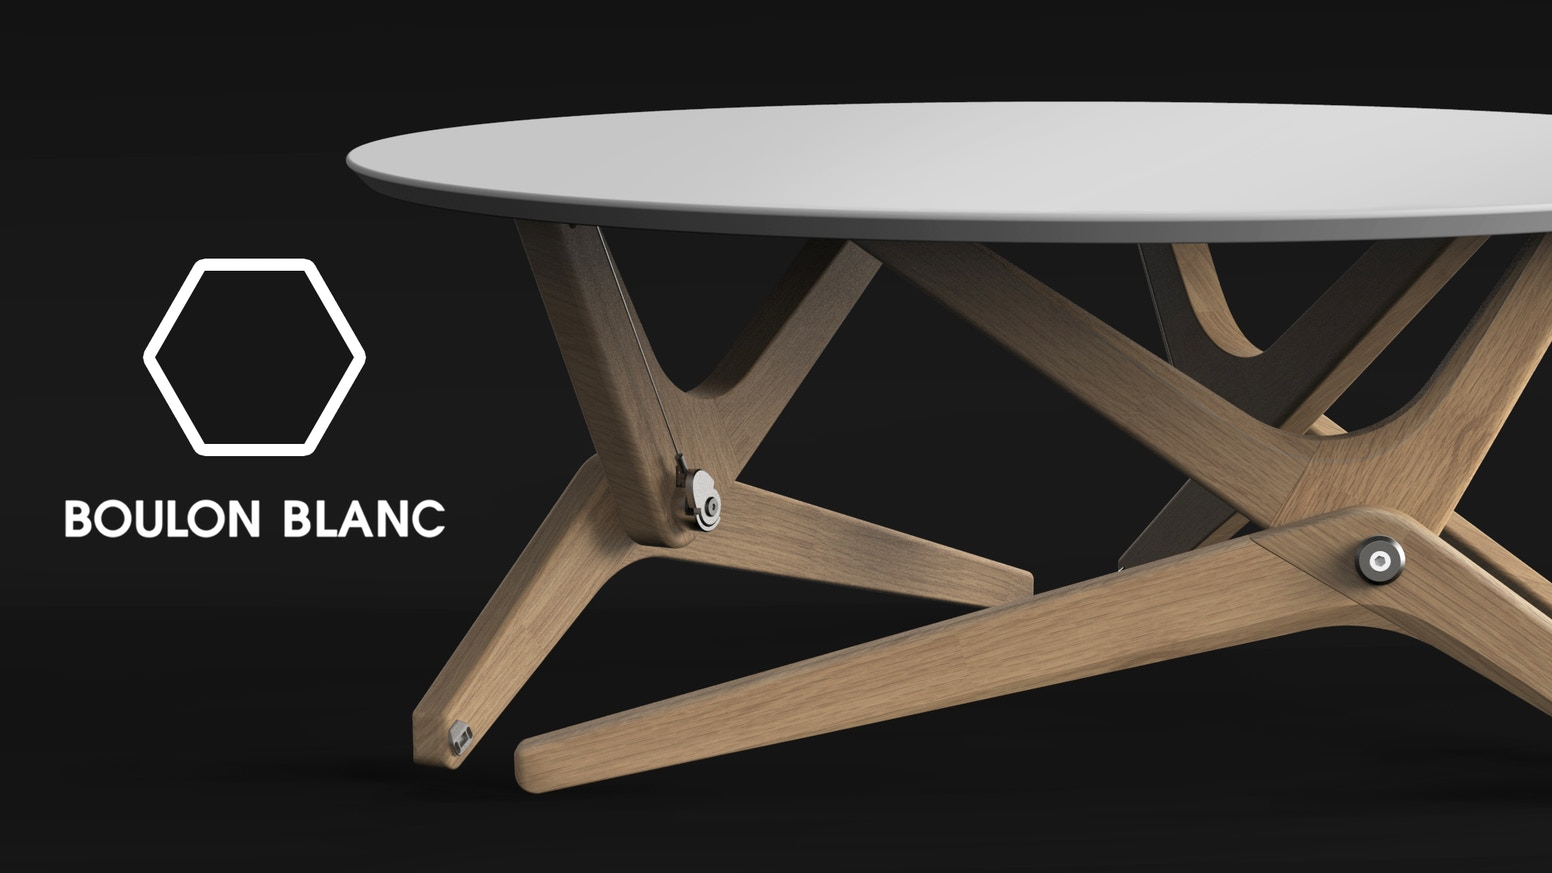 Boulon blanc the next generation of transformable tables by boulon from a coffee table to a diner table in 1 second elegant functional malvernweather Images